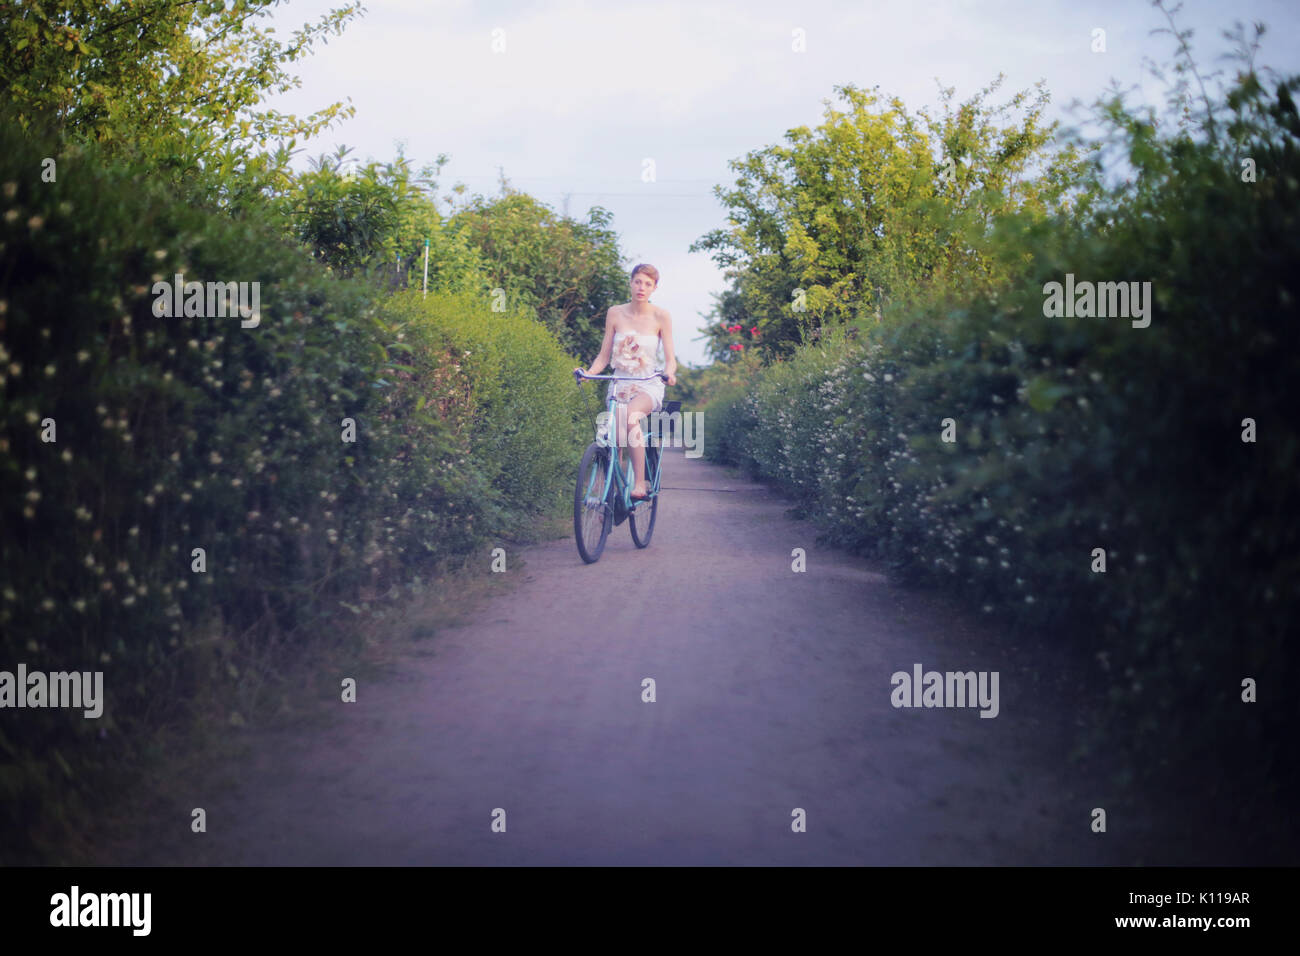 Young woman riding a bicycle in allotments - Stock Image